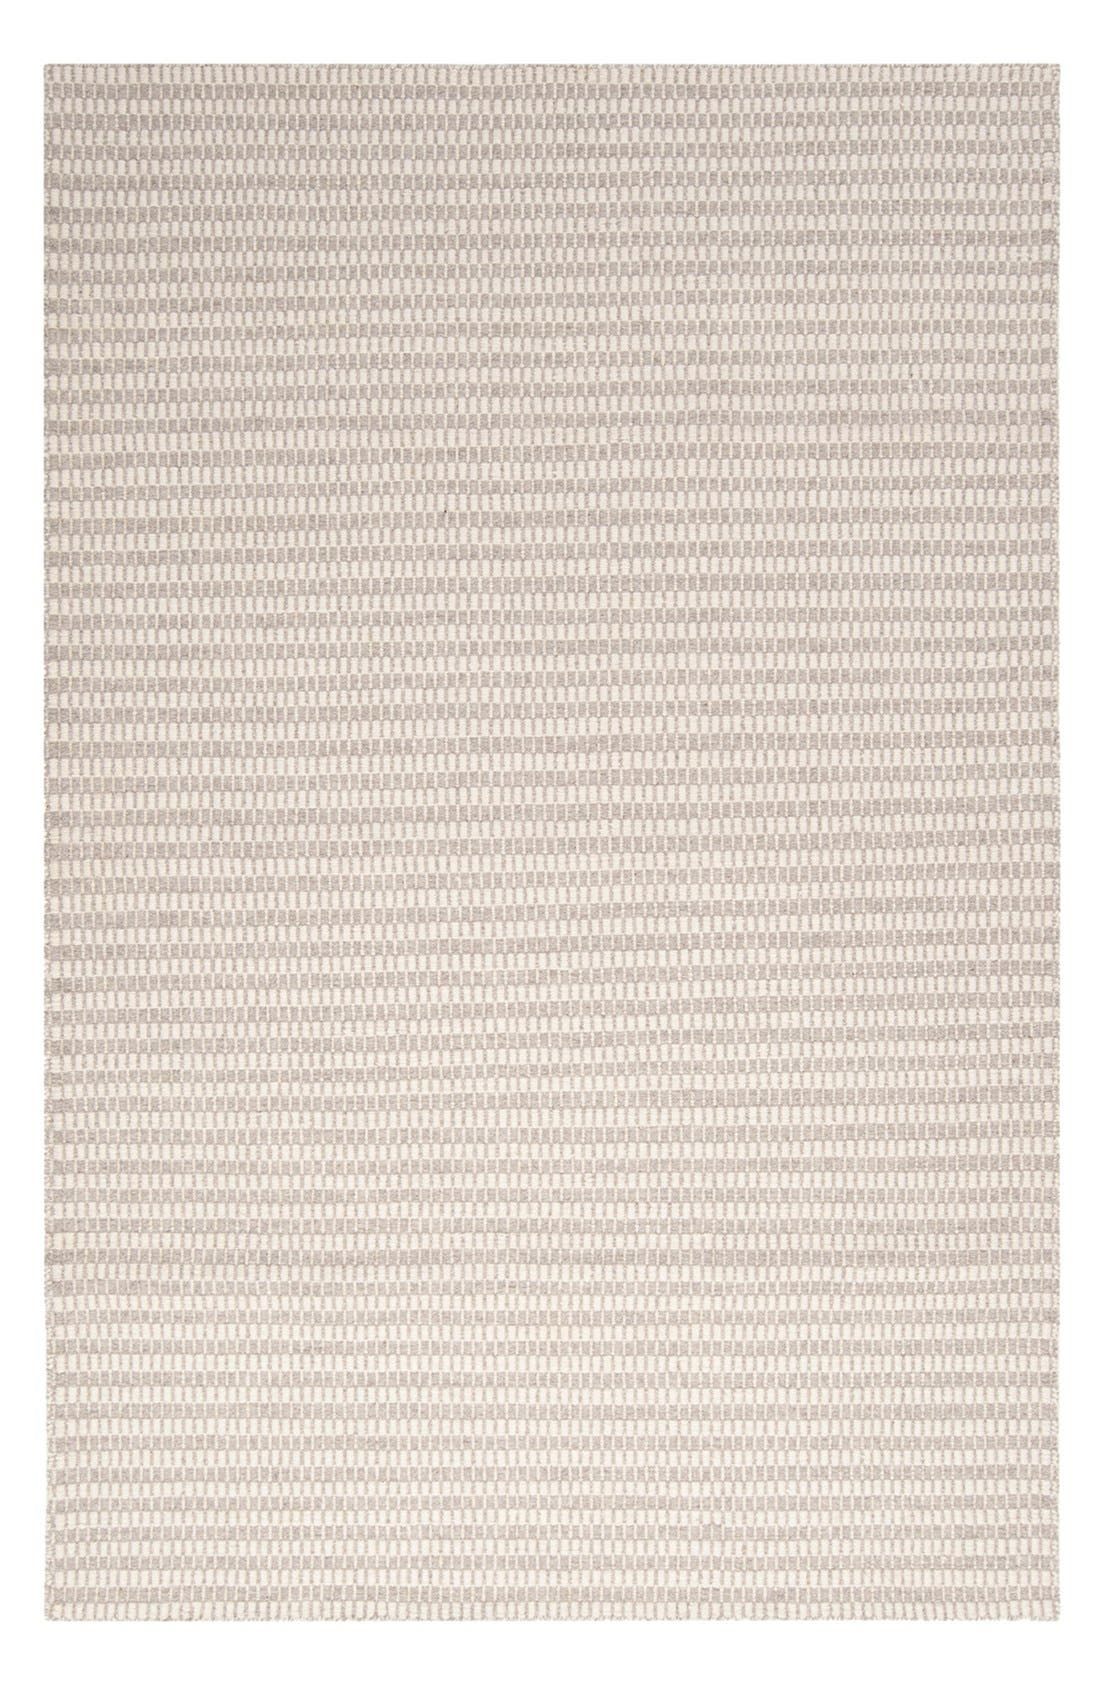 Alternate Image 1 Selected - Surya Home 'Ravena' Wool Rug